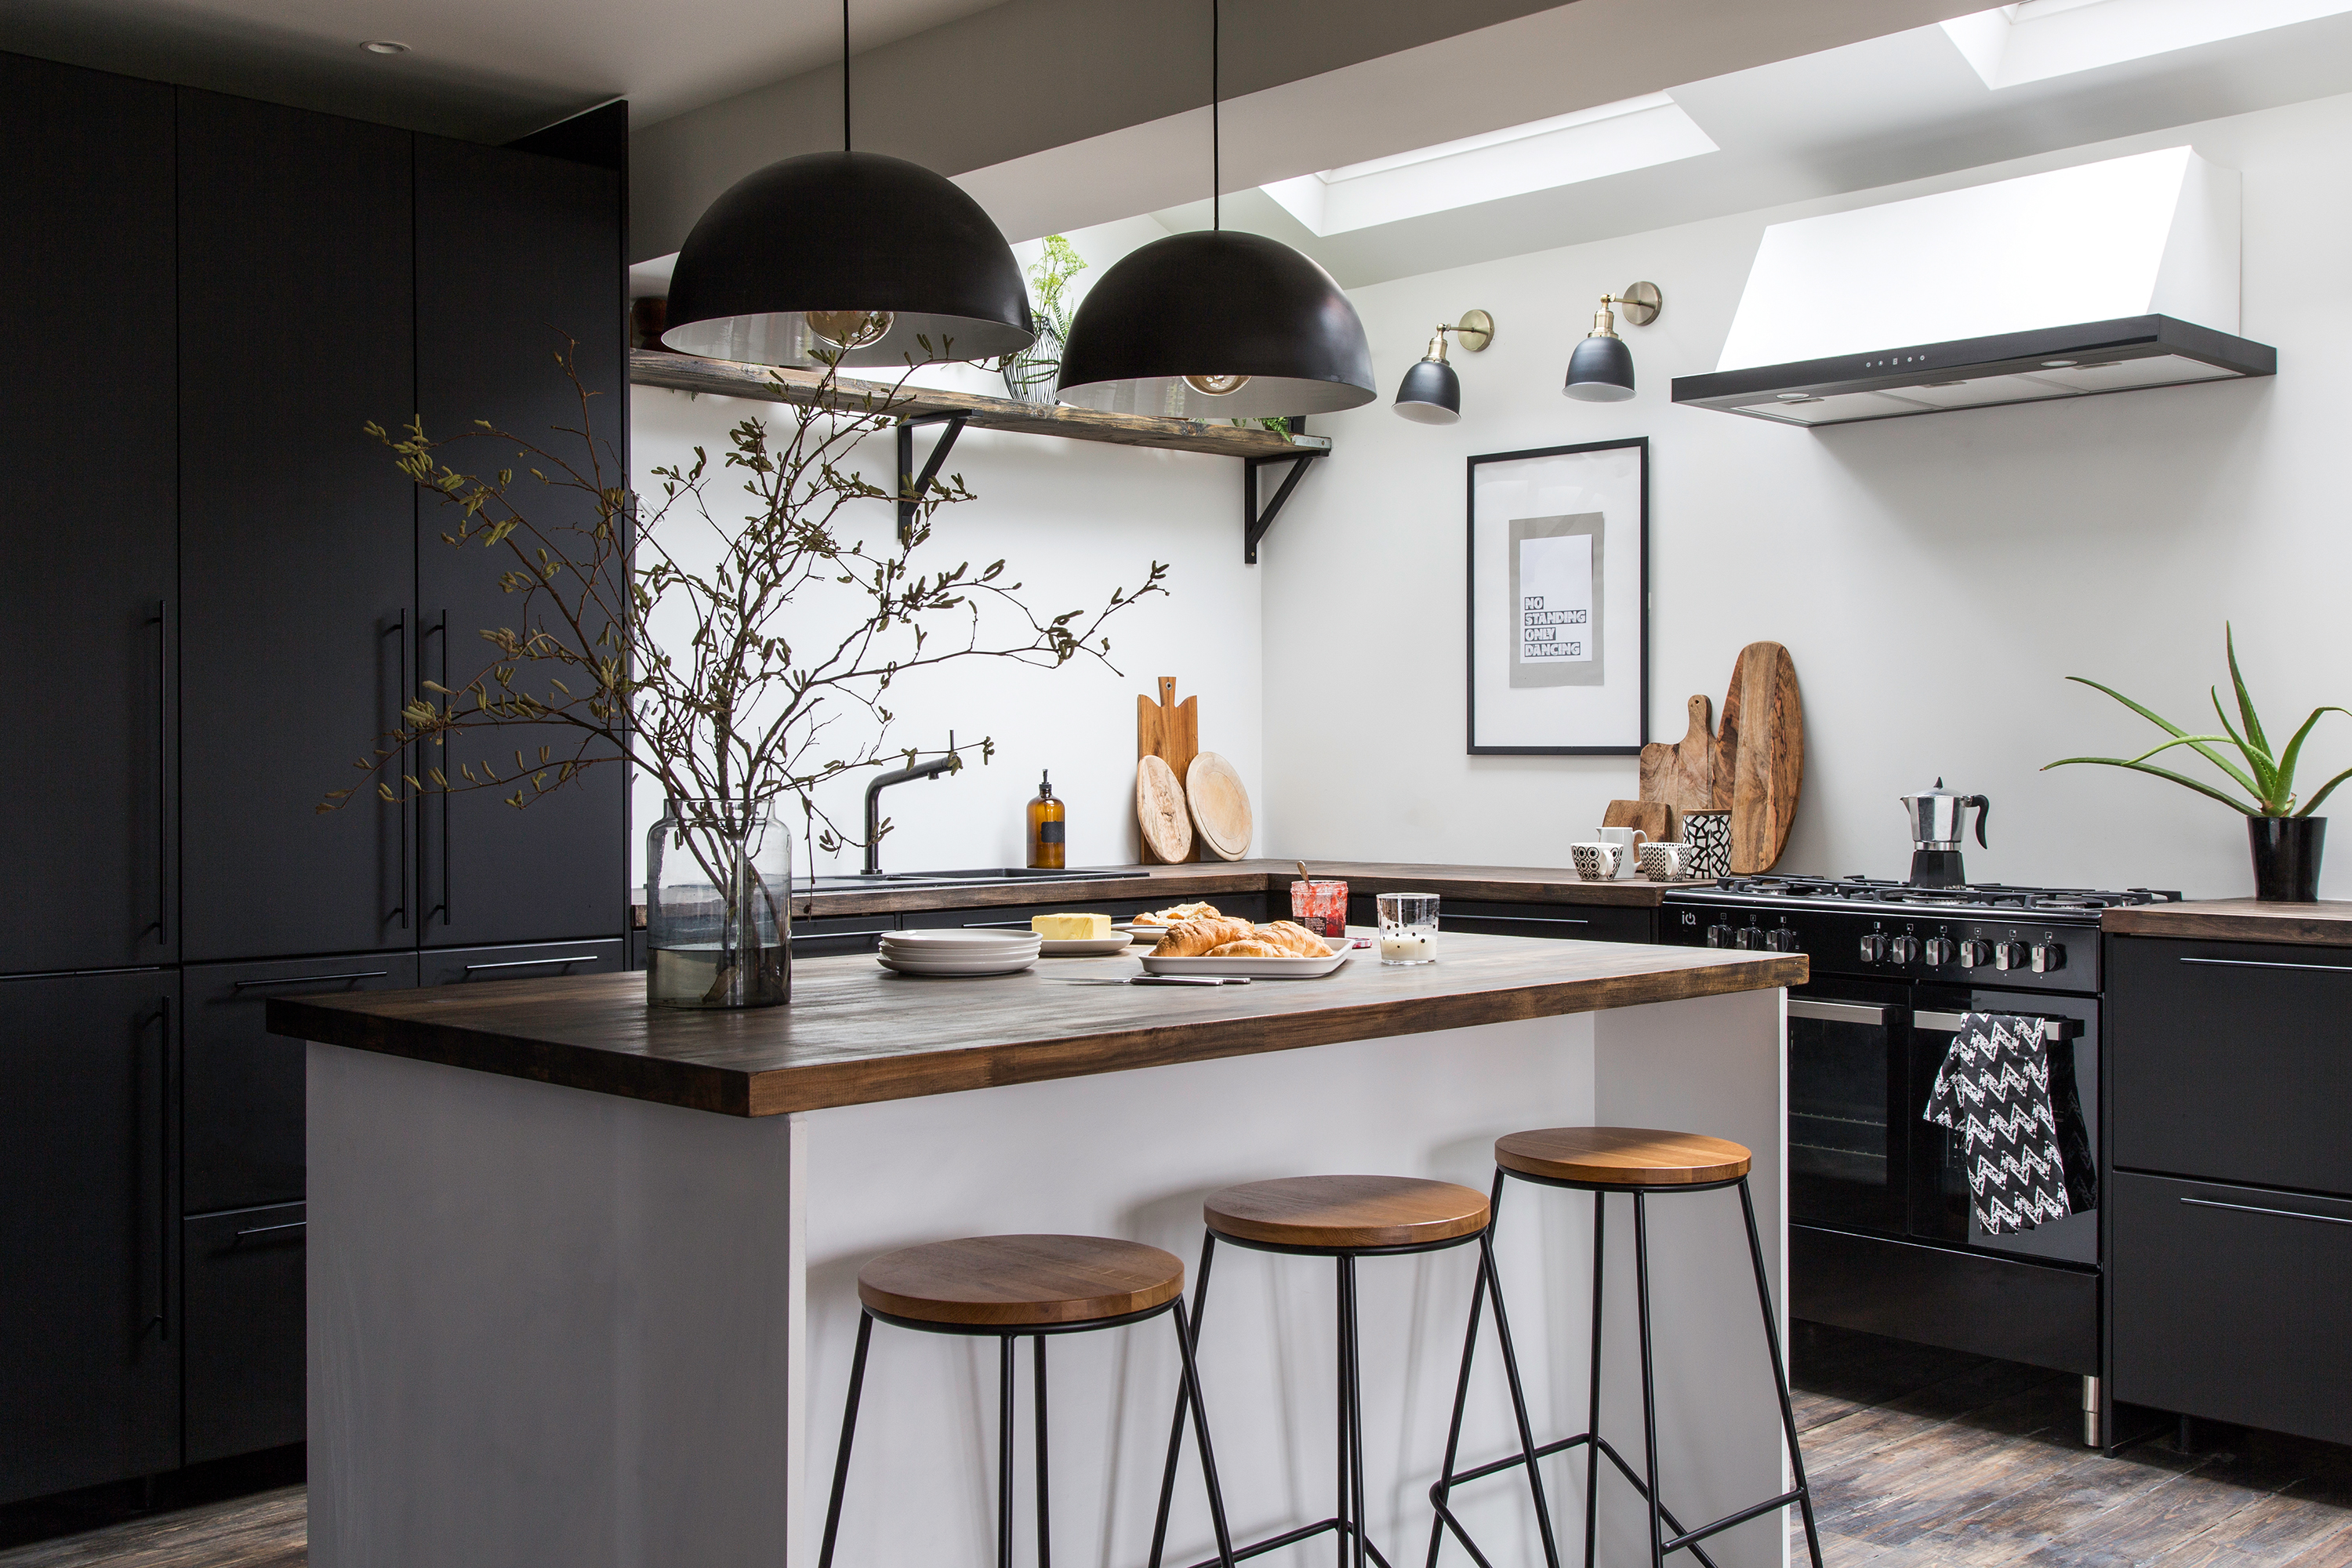 Ikea Kitchen Design Forum Kitchens On A Budget 16 Ways To Design A Stylish Space Real Homes